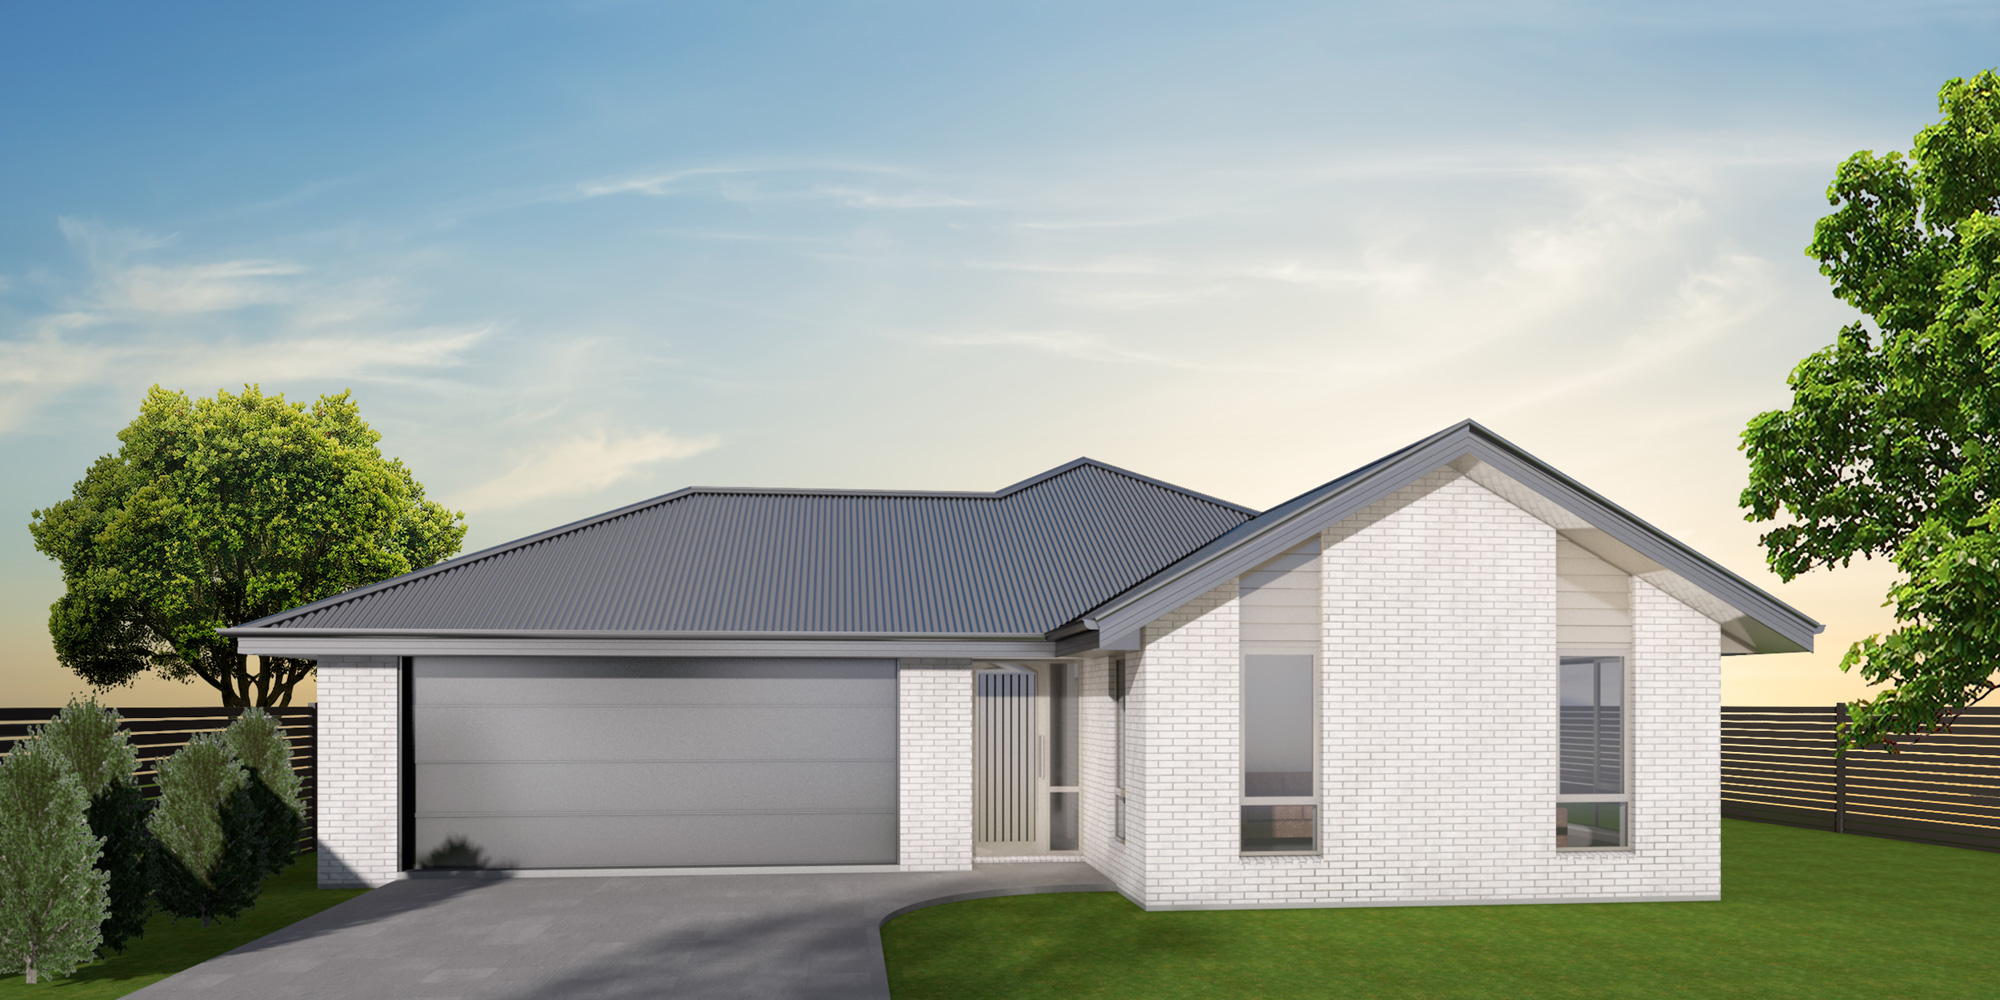 - The Leeston's efficient floor plan includes three bedrooms, two bathrooms and a separate toilet. The centrally located office space is ideal for studying or working from home. With lots of street appeal, this is a home you will be proud to call your own.